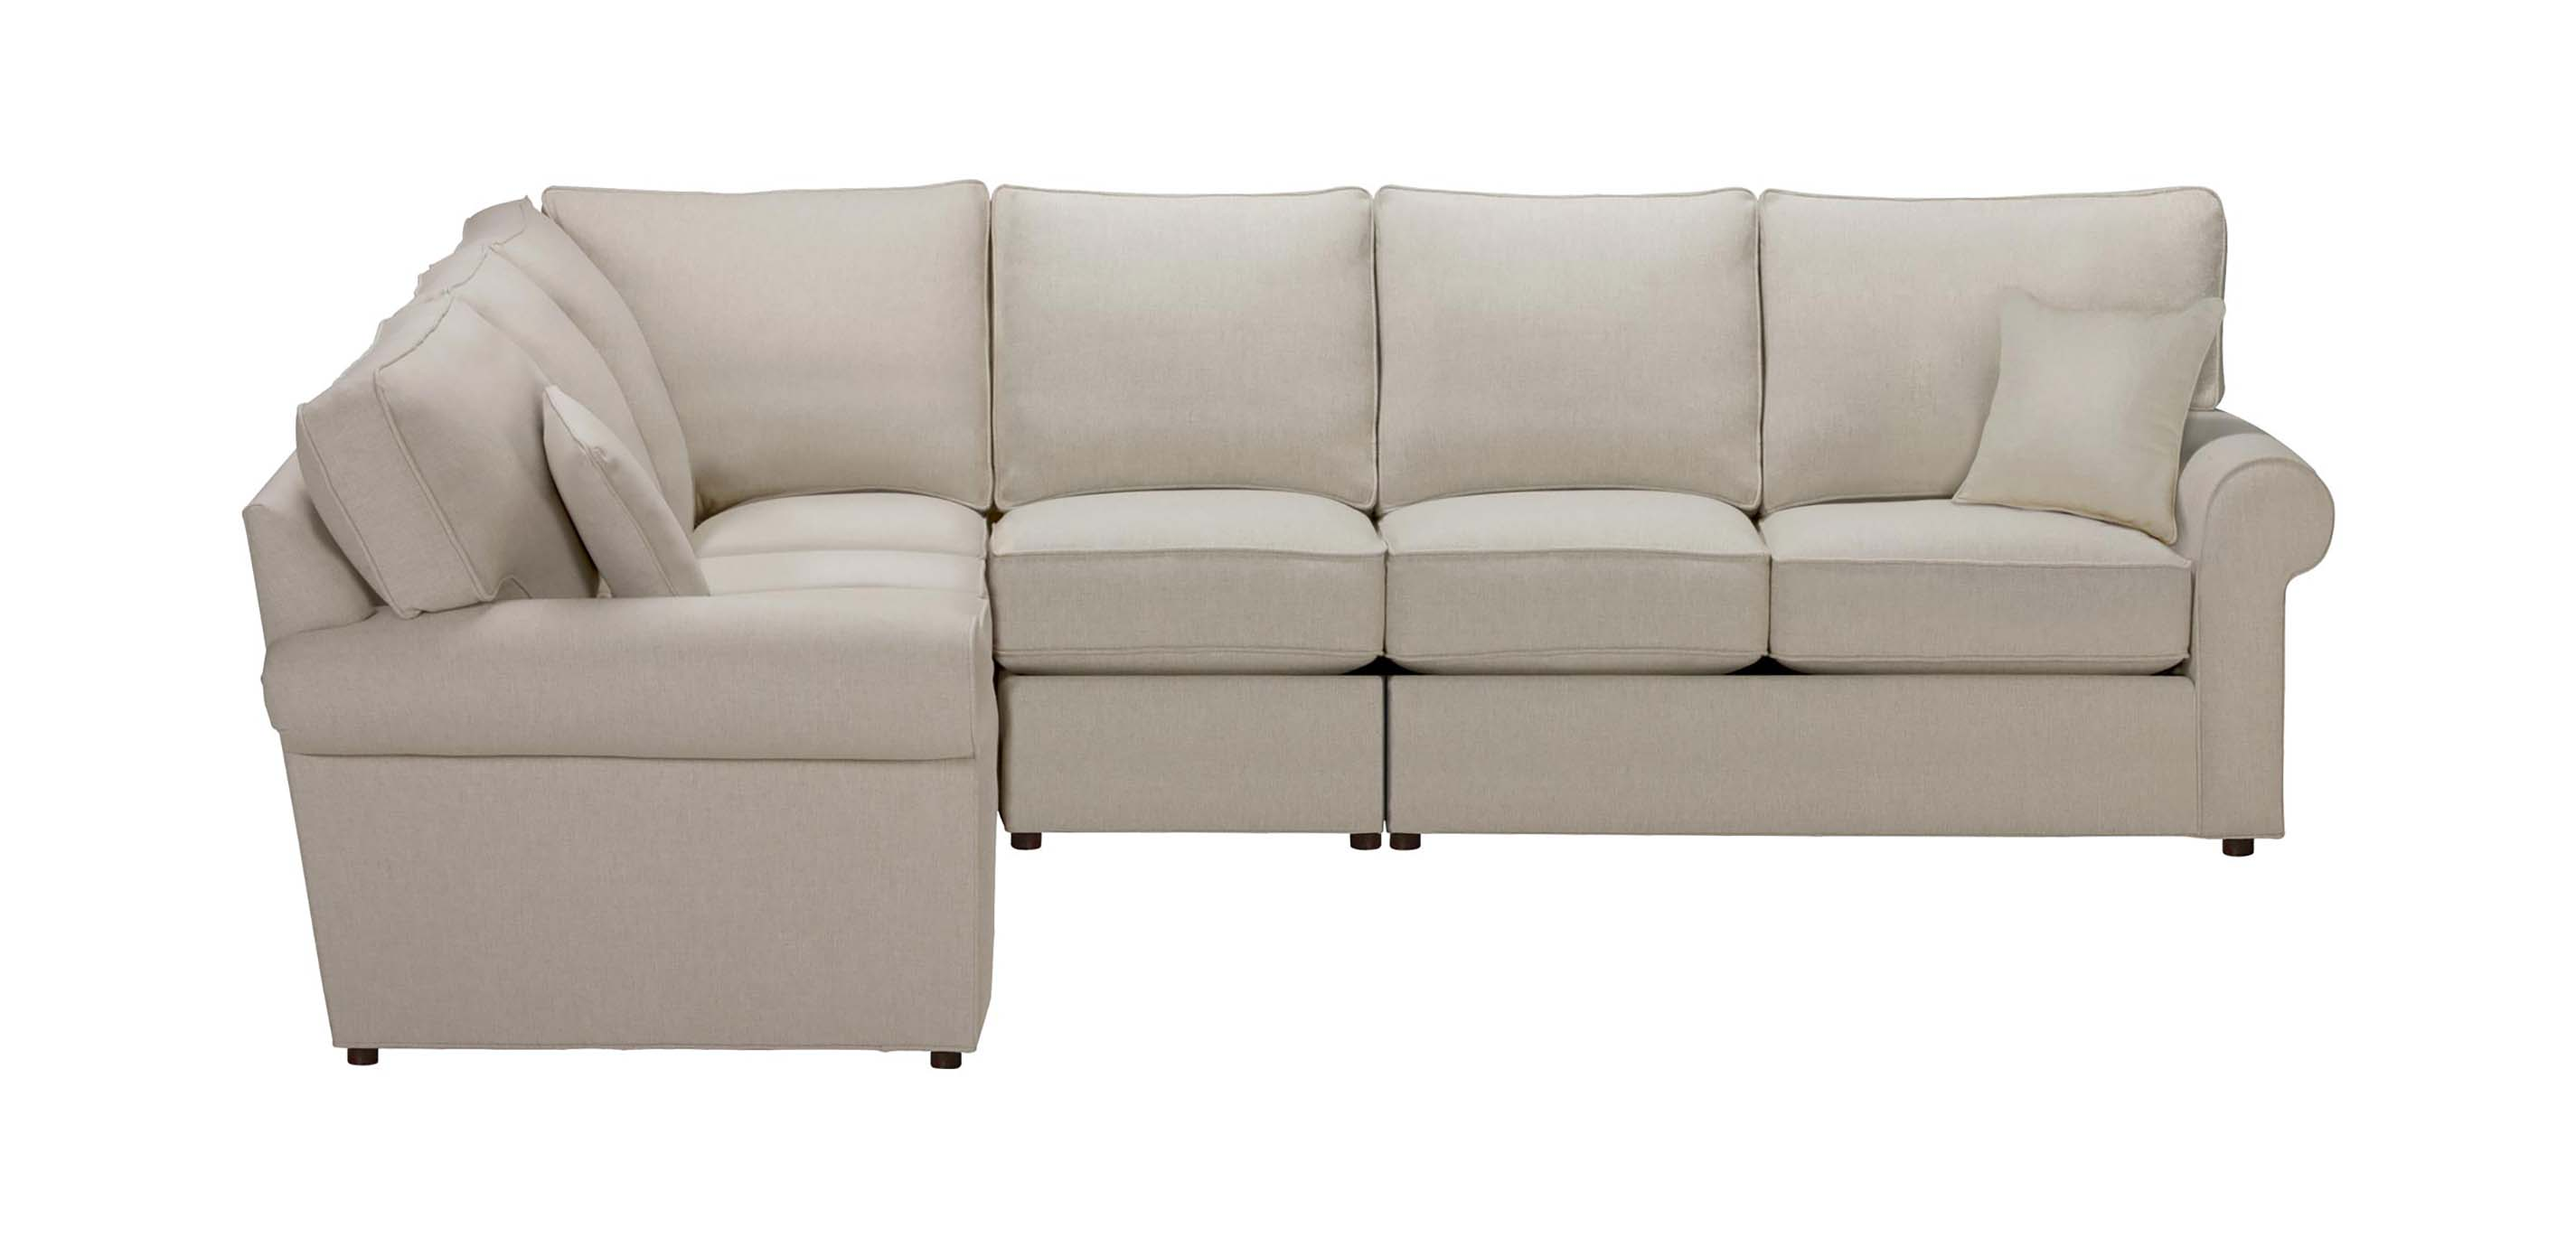 size design double of sectional withuble loungesectional wide chaise dual phenomenal sofa full